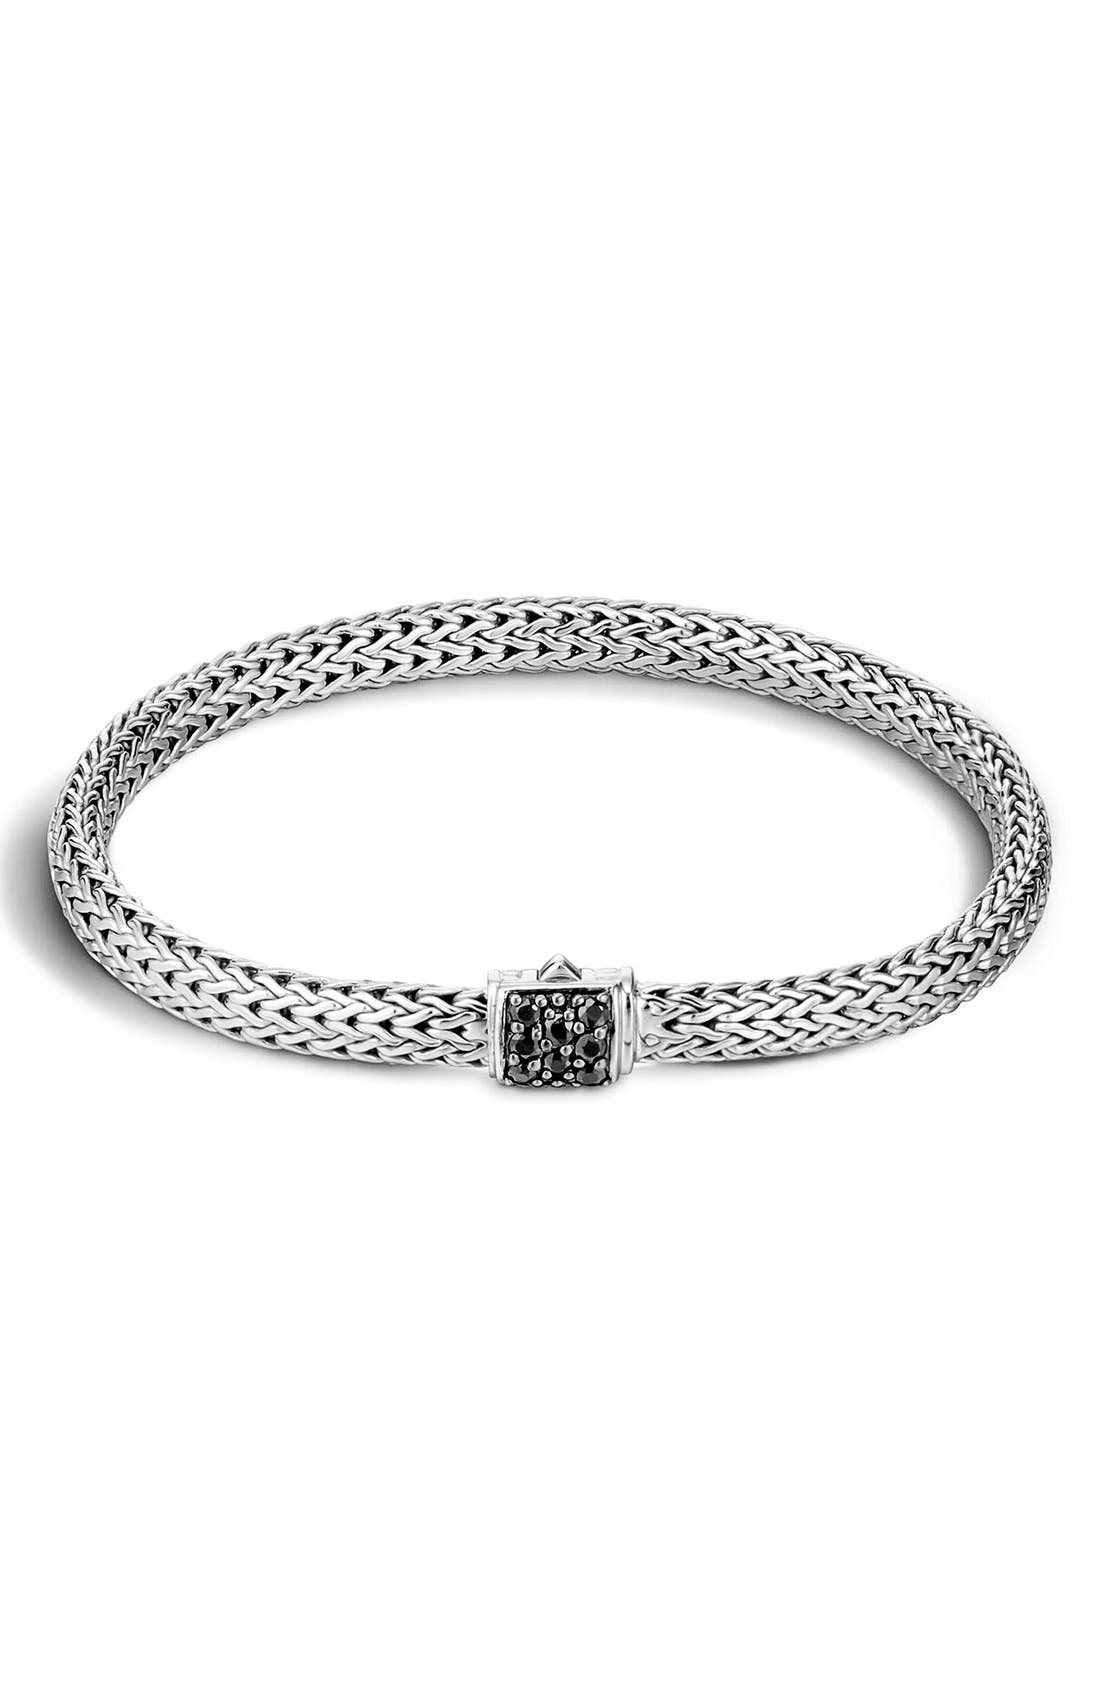 Alternate Image 1 Selected - John Hardy Classic Chain 5mm Bracelet